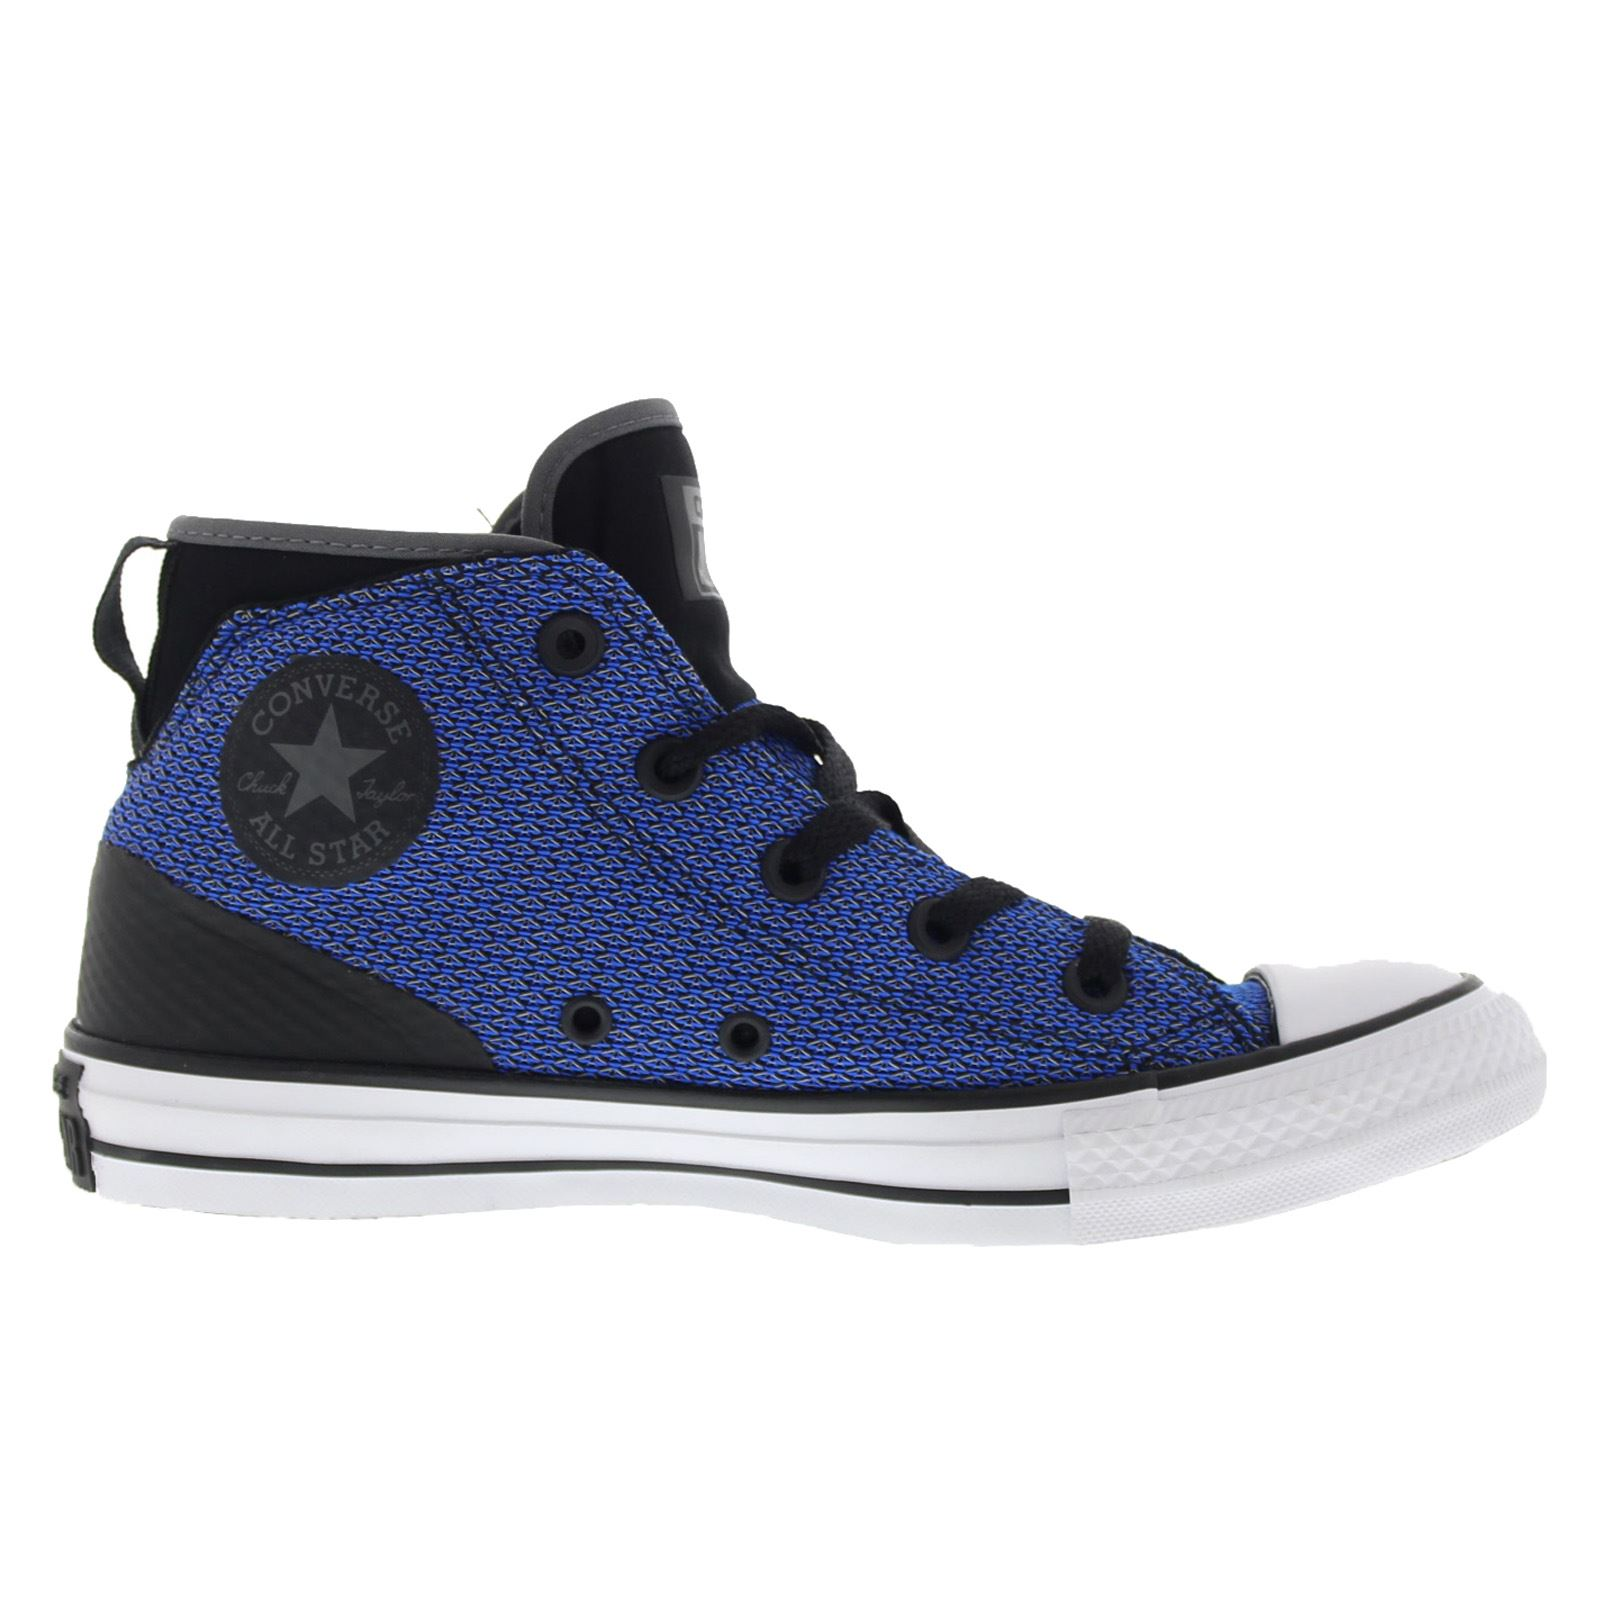 f9a94eca6b84 Converse Chuck Taylor All Star Syde Street Black Blue Womens High Top  Trainers